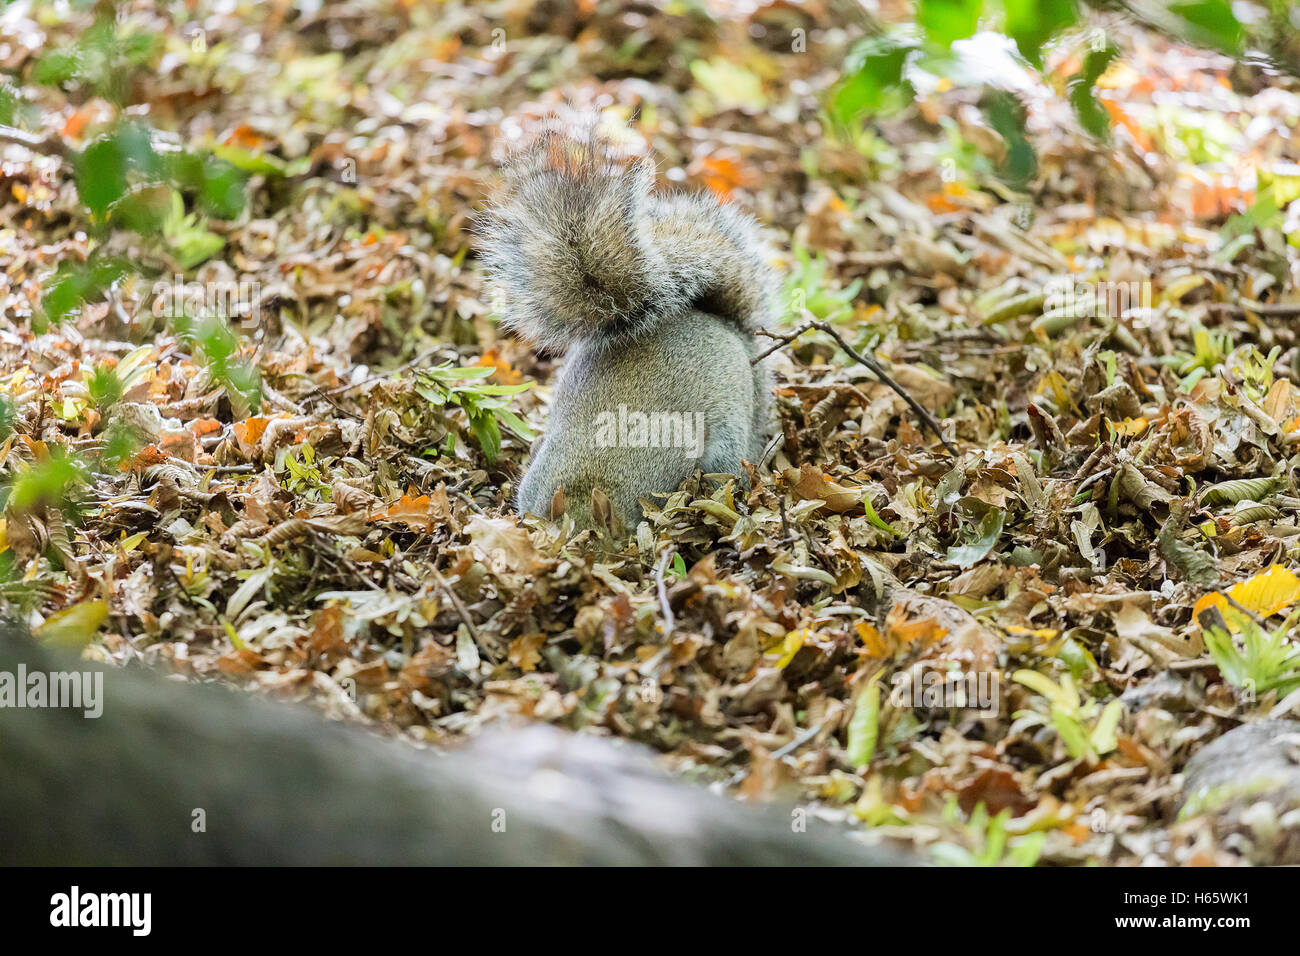 A grey/gray squirrel with head under the ground in a park in Autumn. - Stock Image